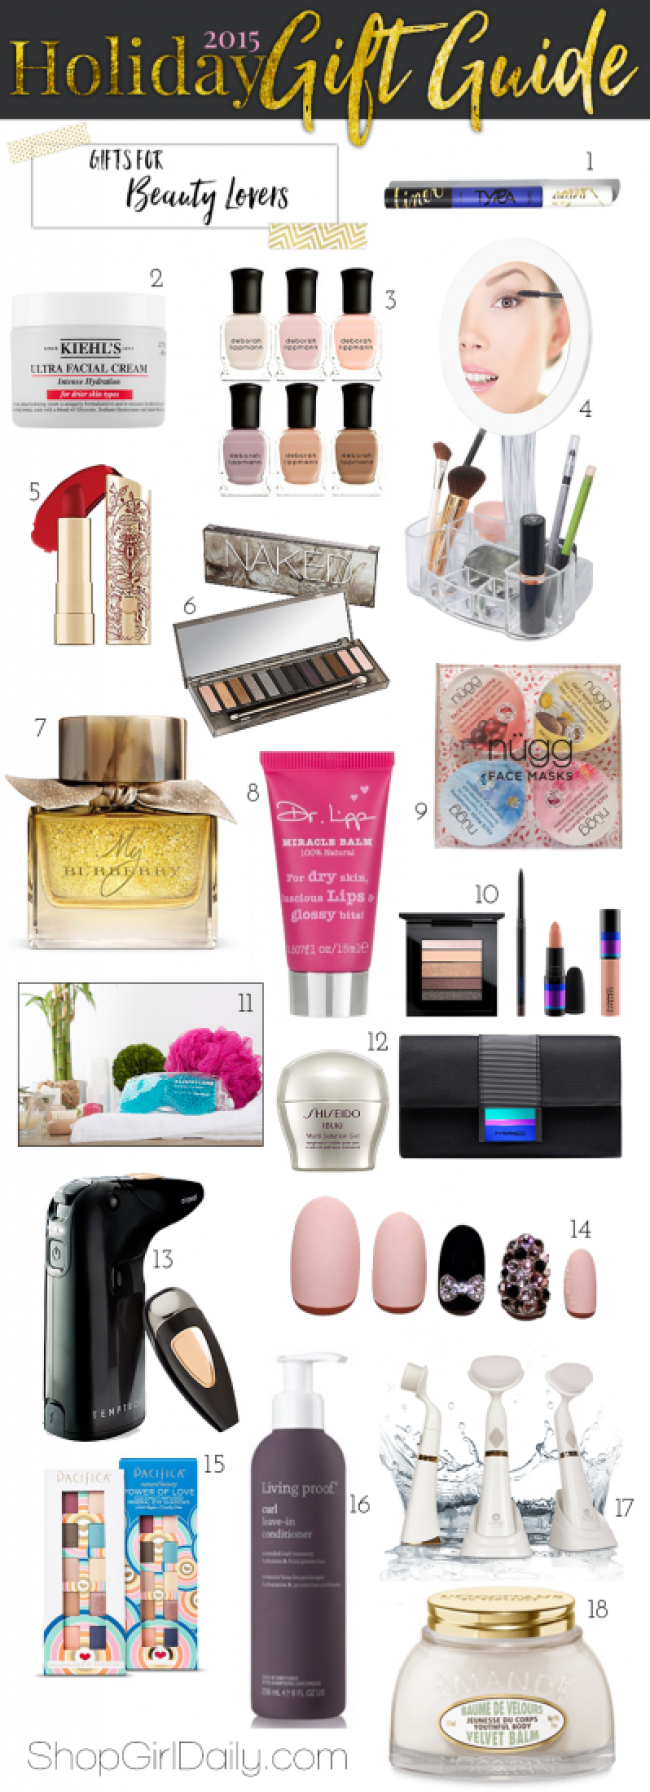 2015 Holiday Gift Guide: Beauty Gifts | ShopGirlDaily.com